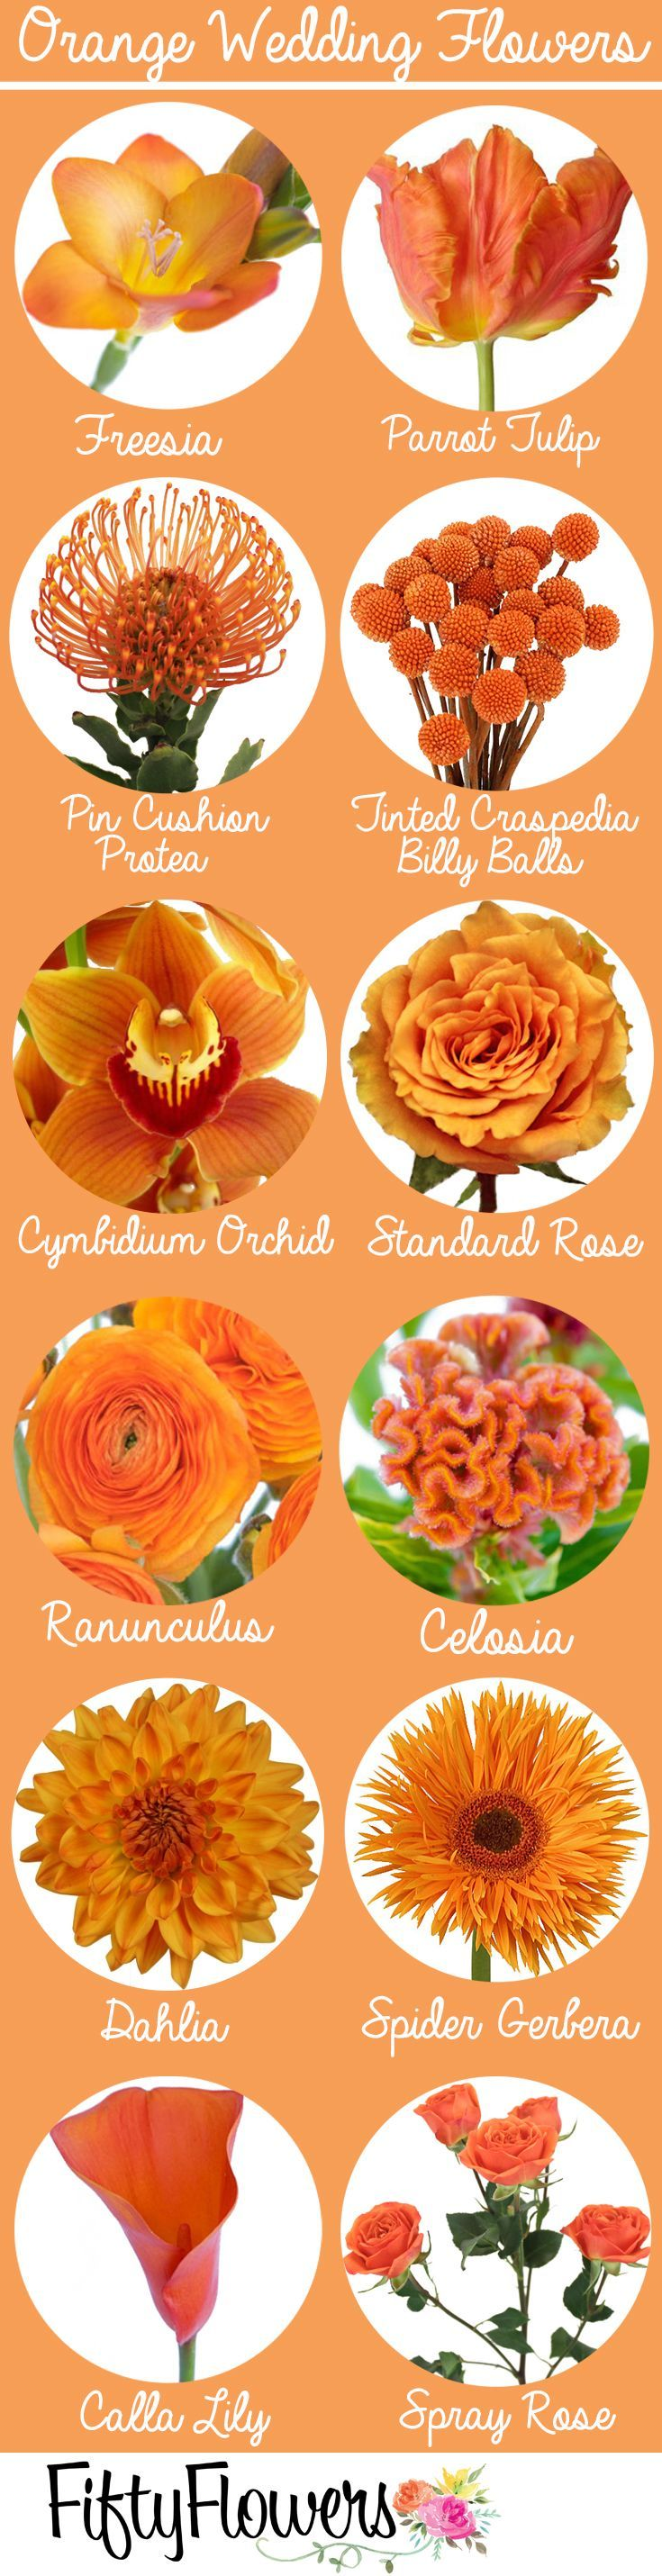 Eye-catching orange flowers for a bold bridal look from http://FiftyFlowers.com!